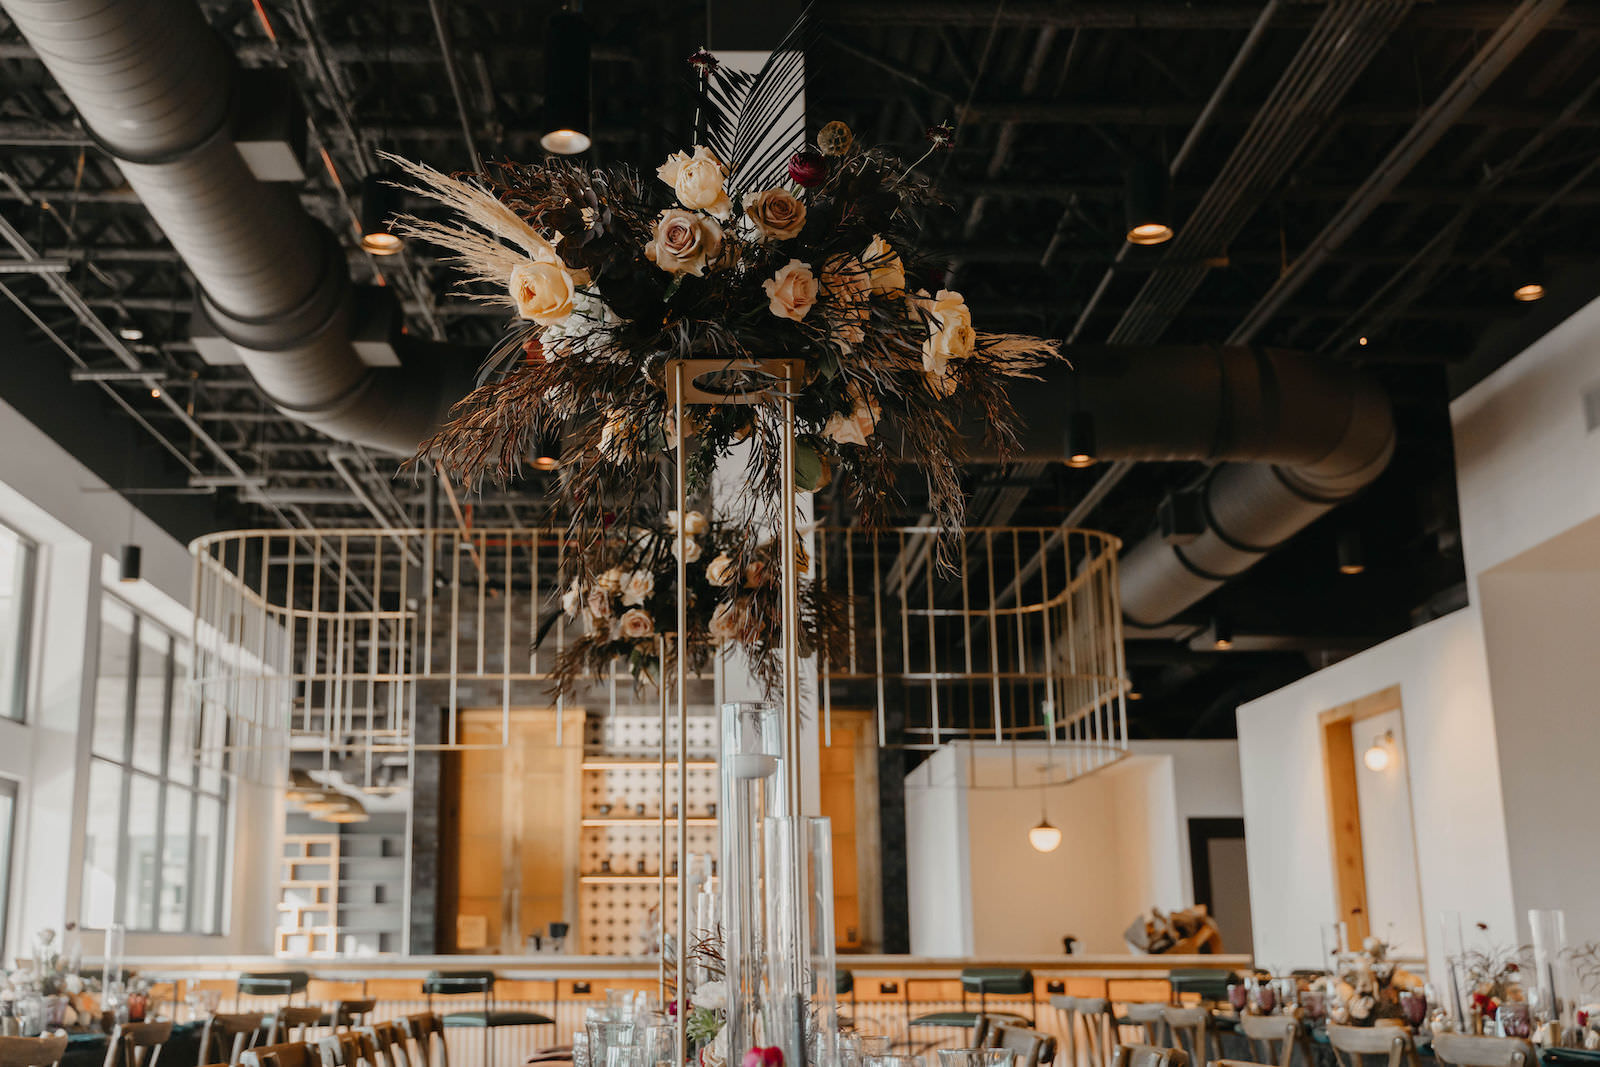 Indoor Wedding Reception at Tampa Wedding Venue Hyde House   Tall Geometric Vase Centerpieces with Dark Green and Black Leaves, Pampas Grass, and Blush Cafe au Lait Roses with Candlesticks